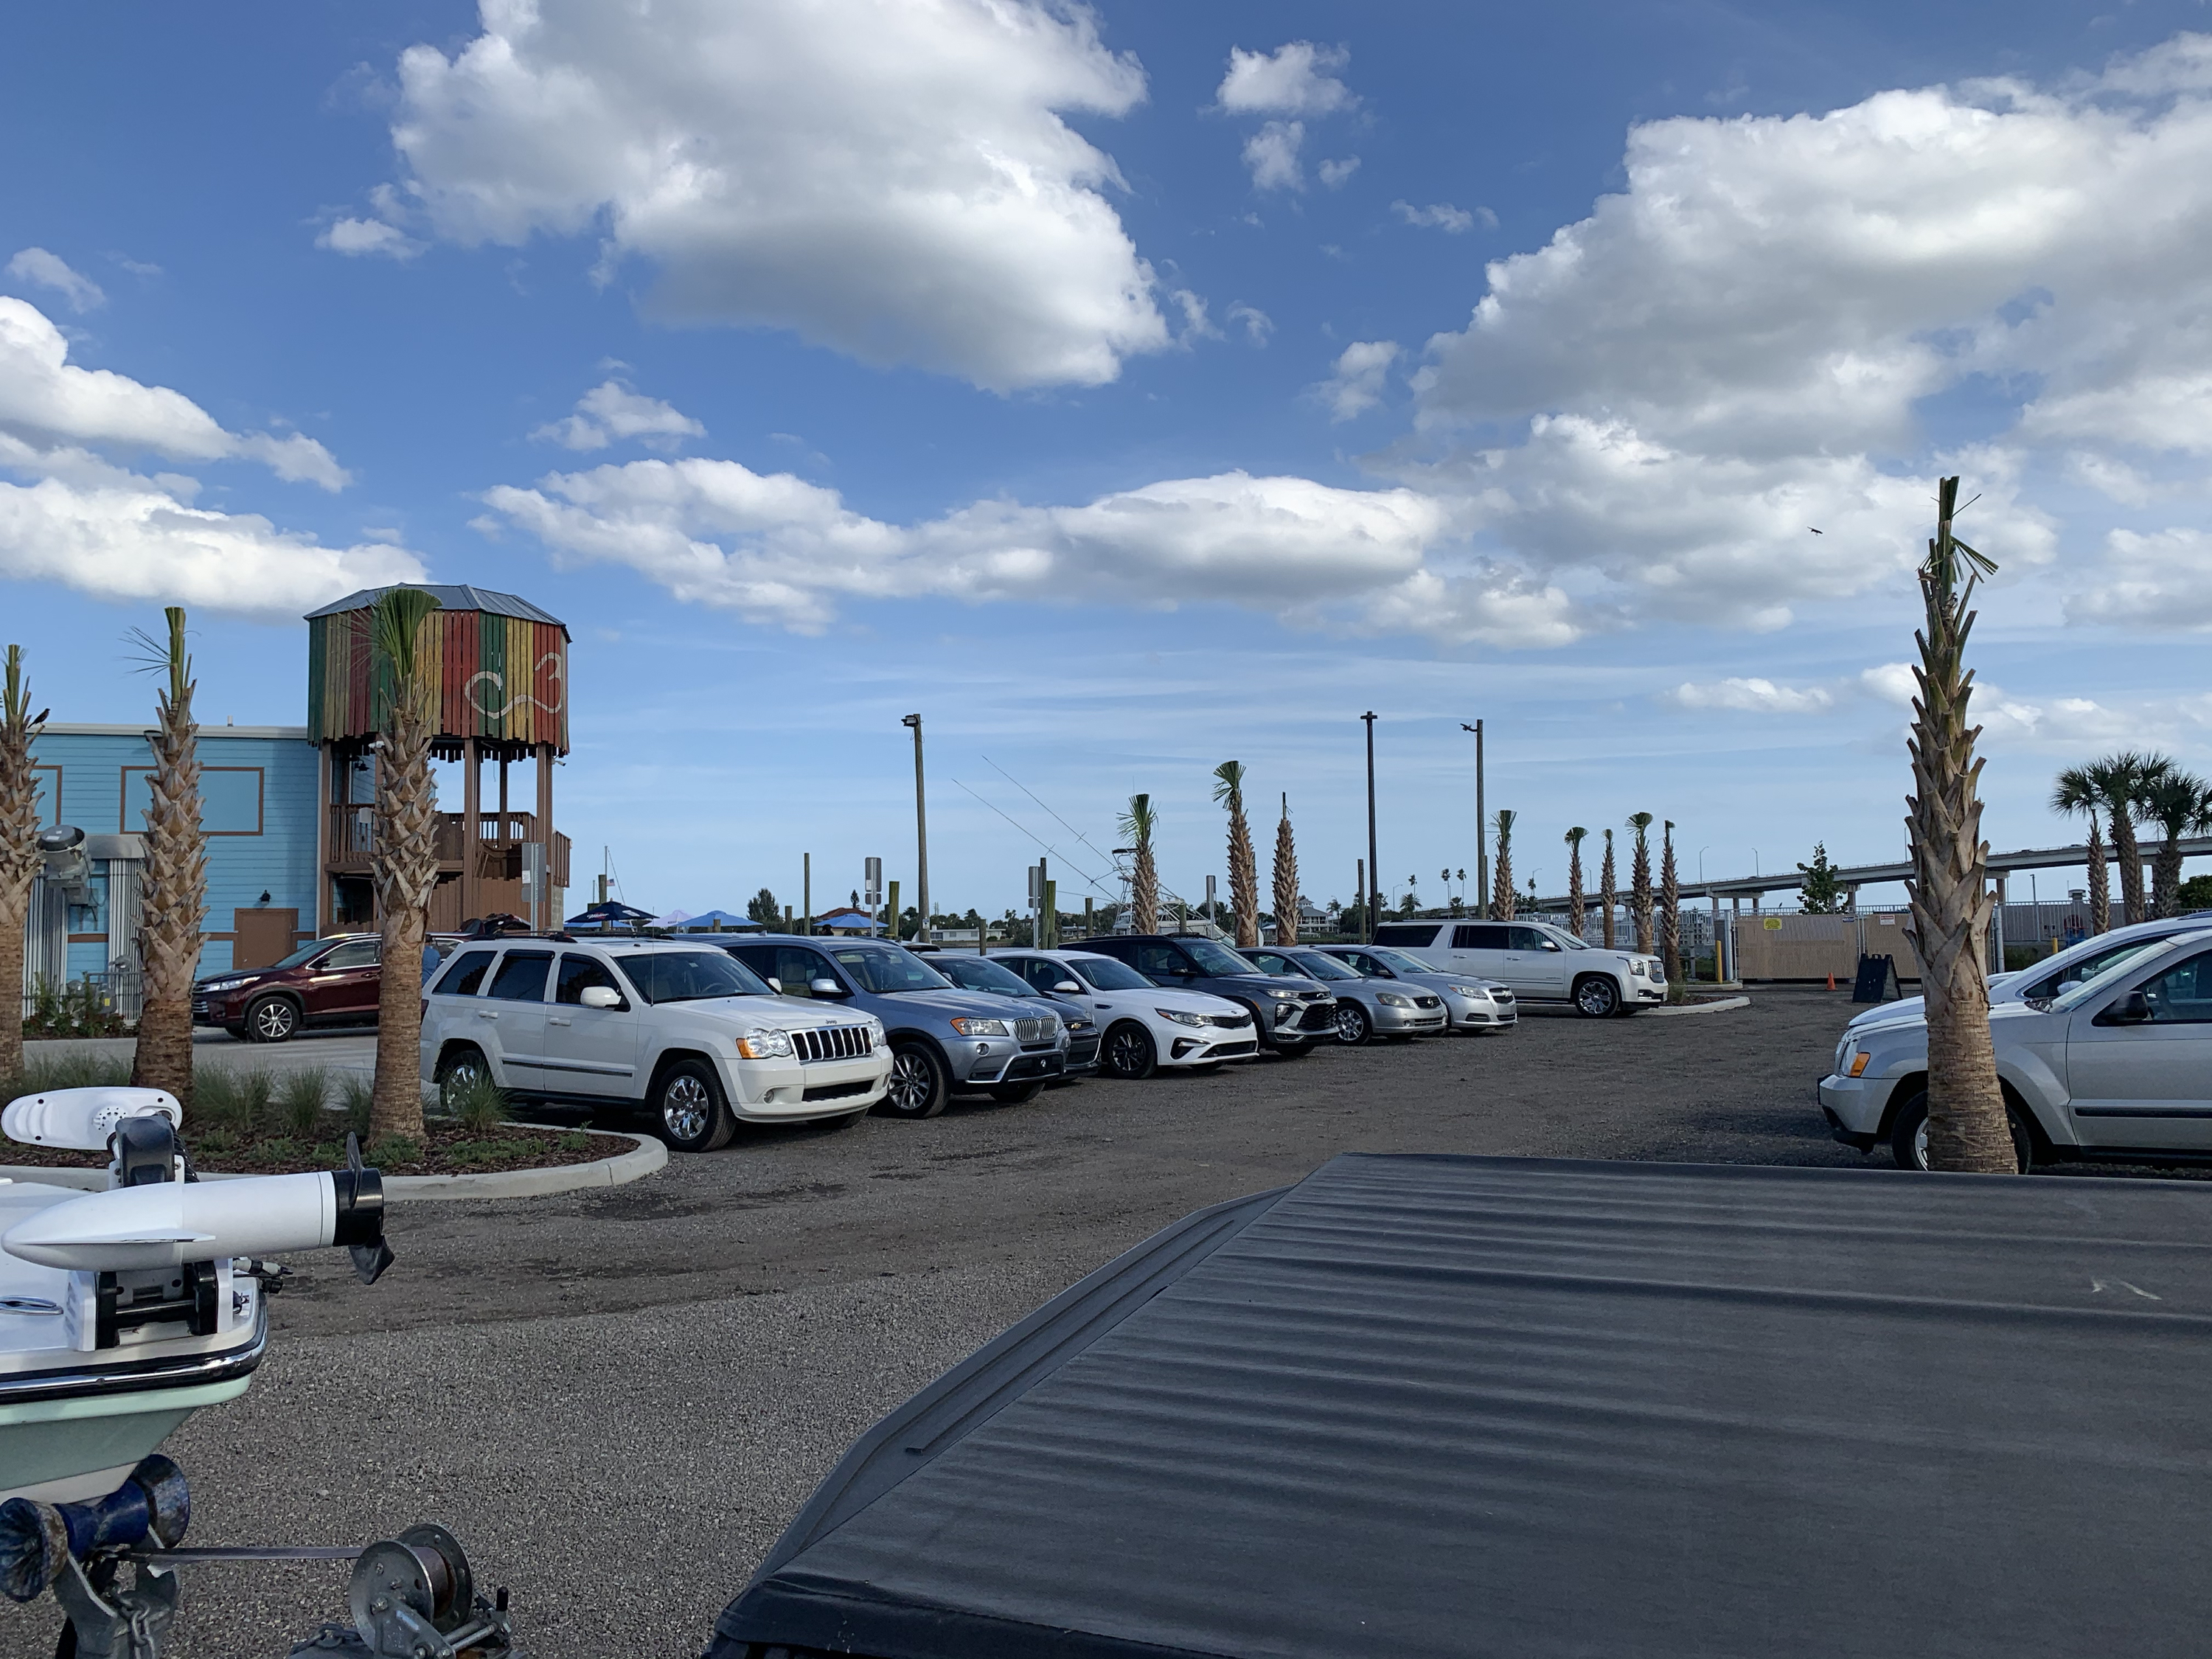 Valet parking required at the River Deck restaurant in New Smyrna Beach Florida